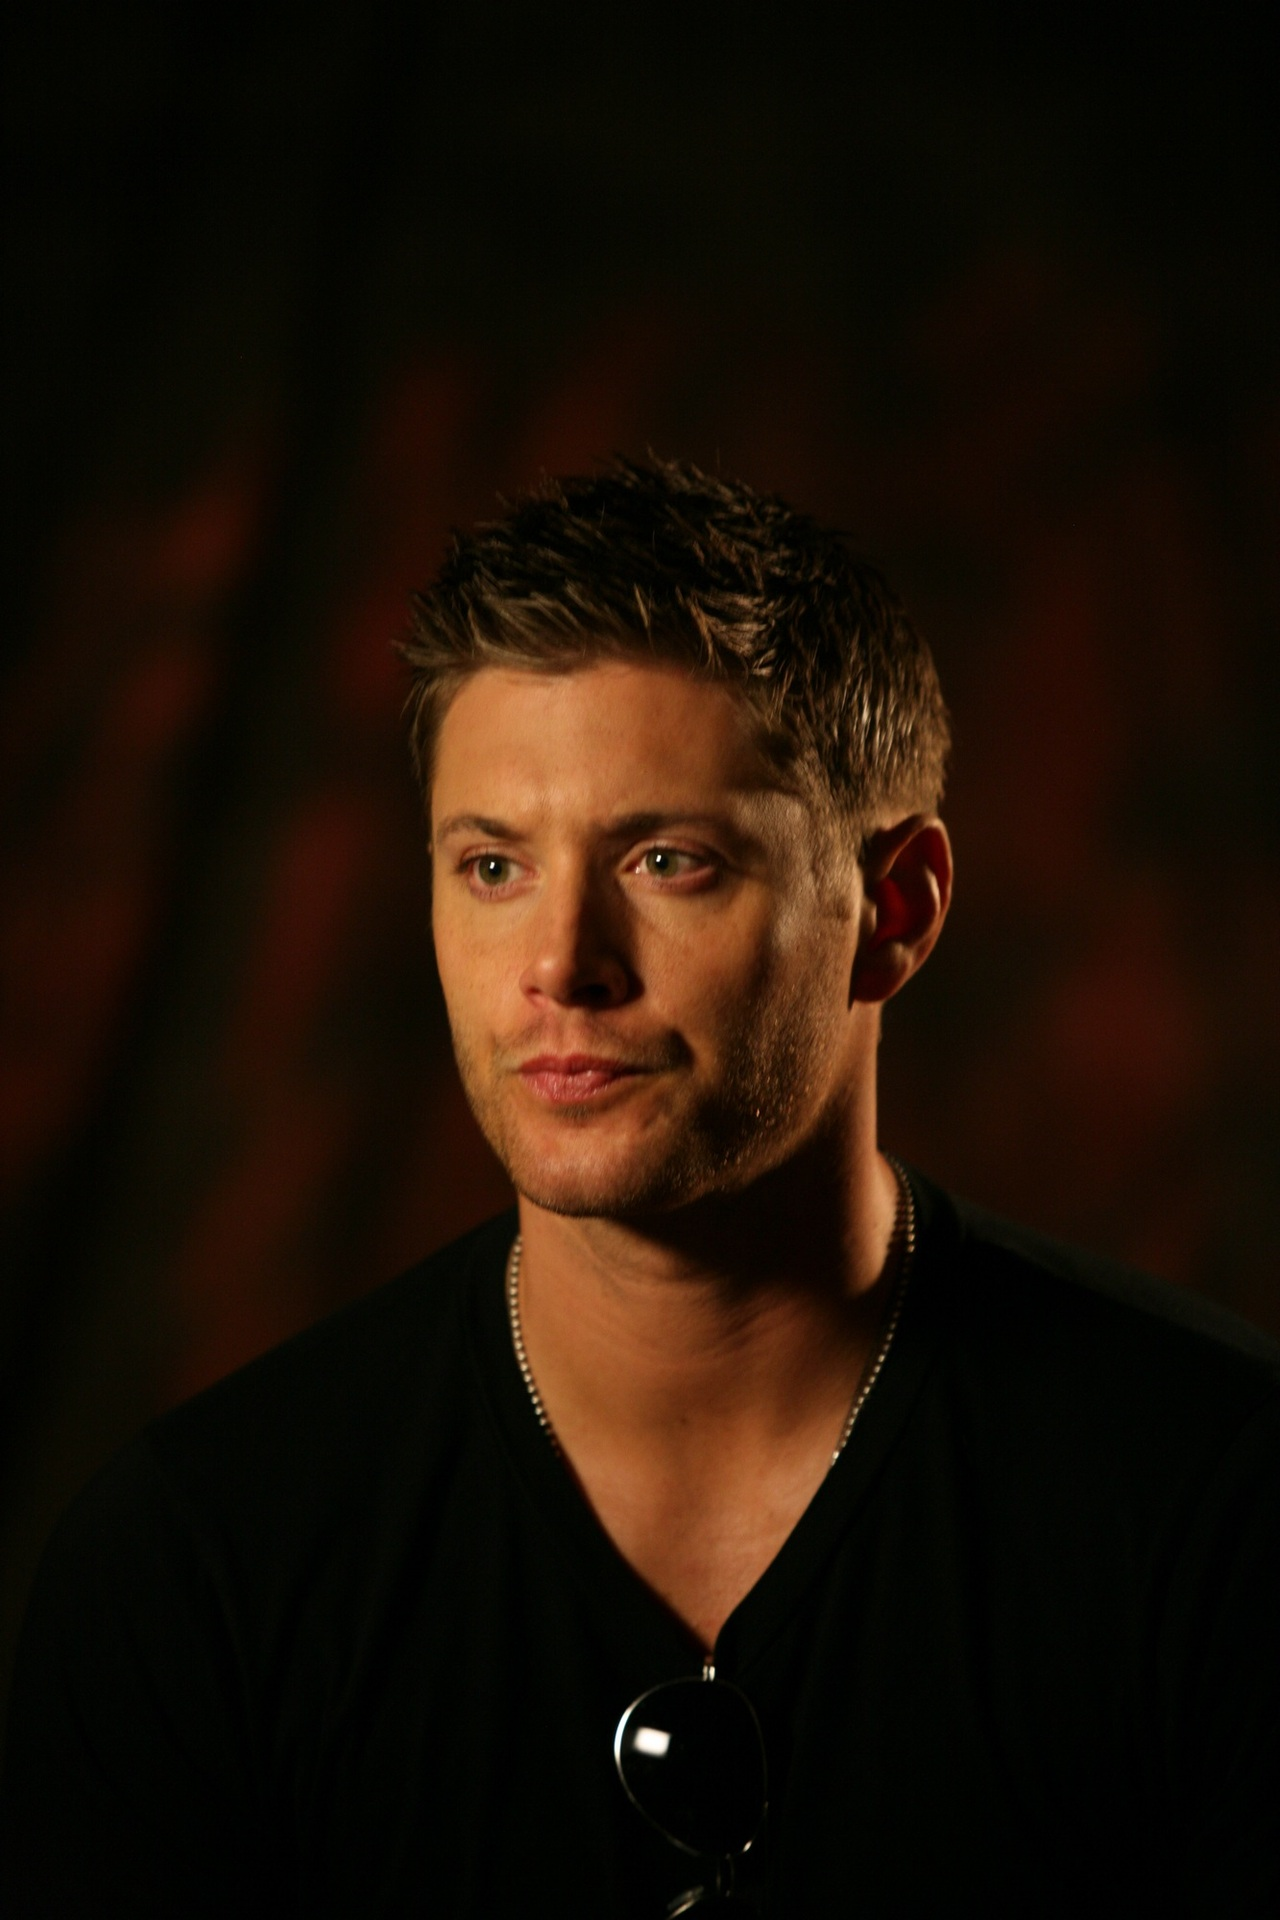 jensen ackles wallpapers high quality download free